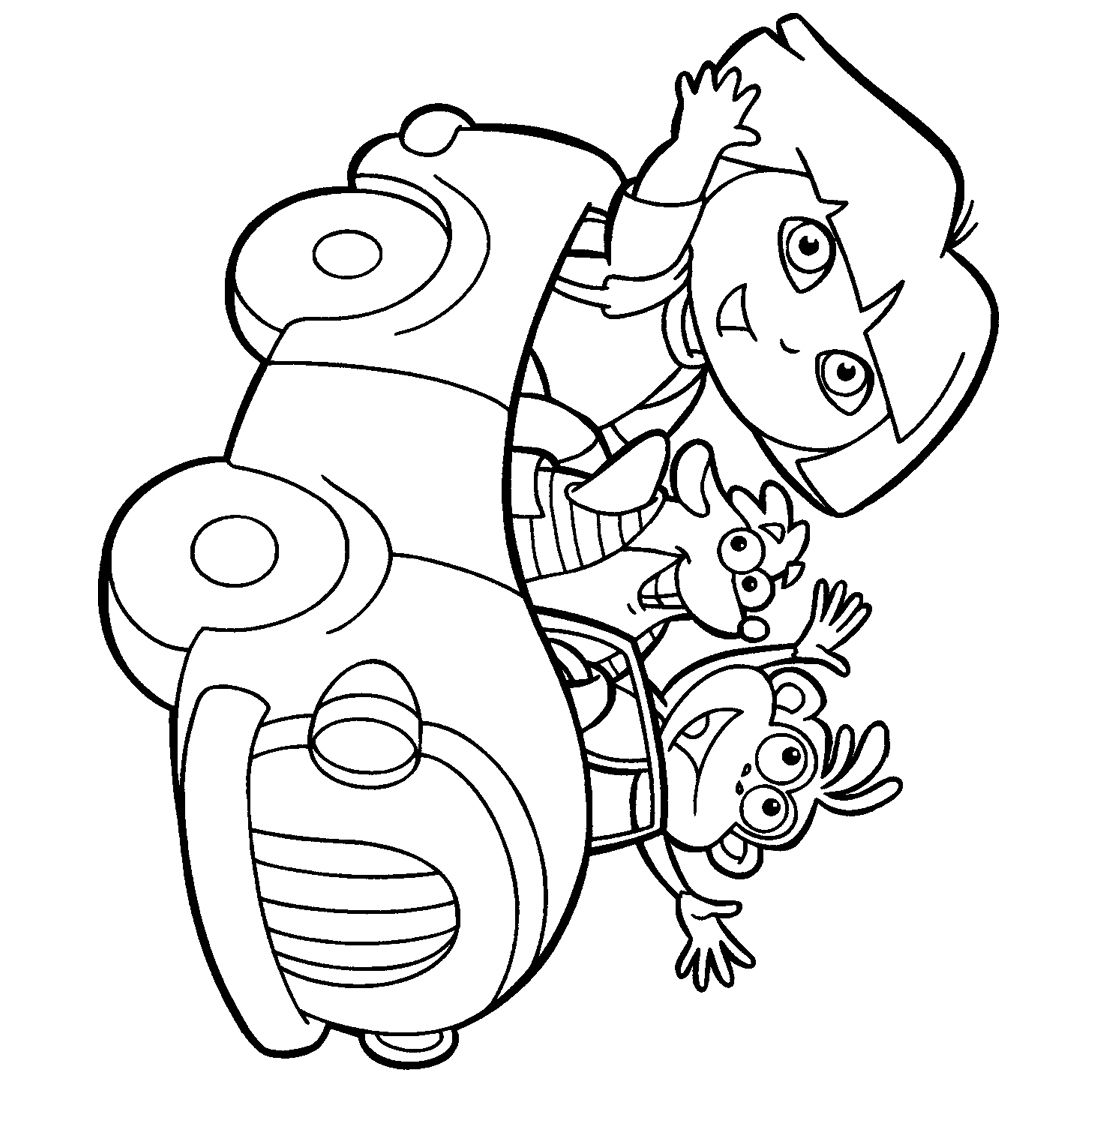 Colouring in pictures for toddlers - Dora Printable Coloring Pages For Kids Tsumtsumplush Com Place To Purchase Tsum Tsum Plush